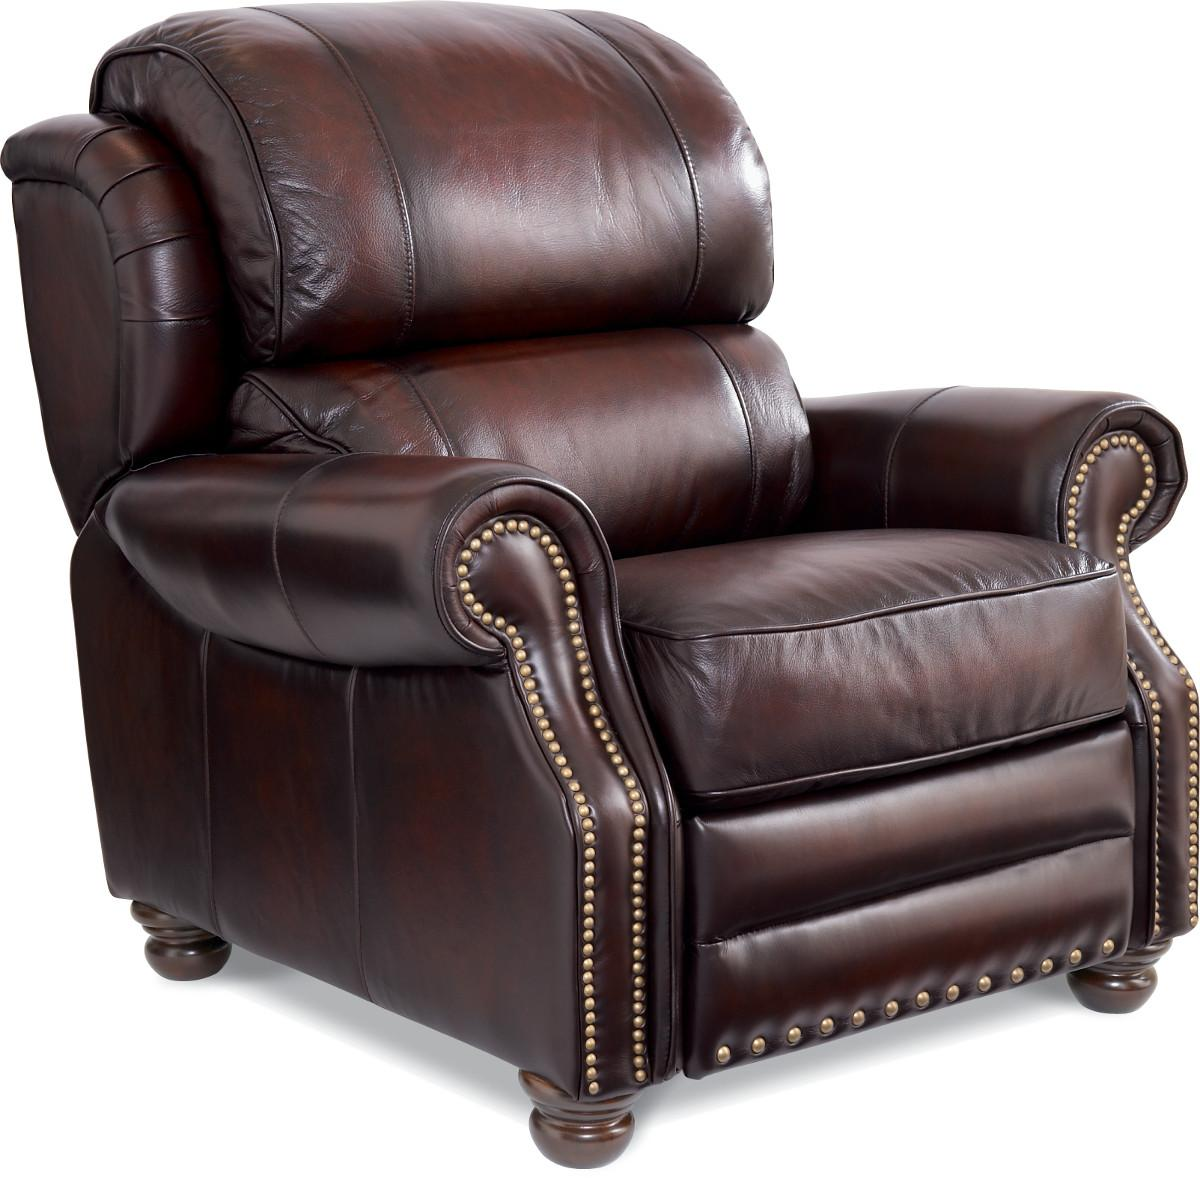 Traditional High Leg Leather Recliner By La Z Boy Wolf And Gardiner Wolf Furniture